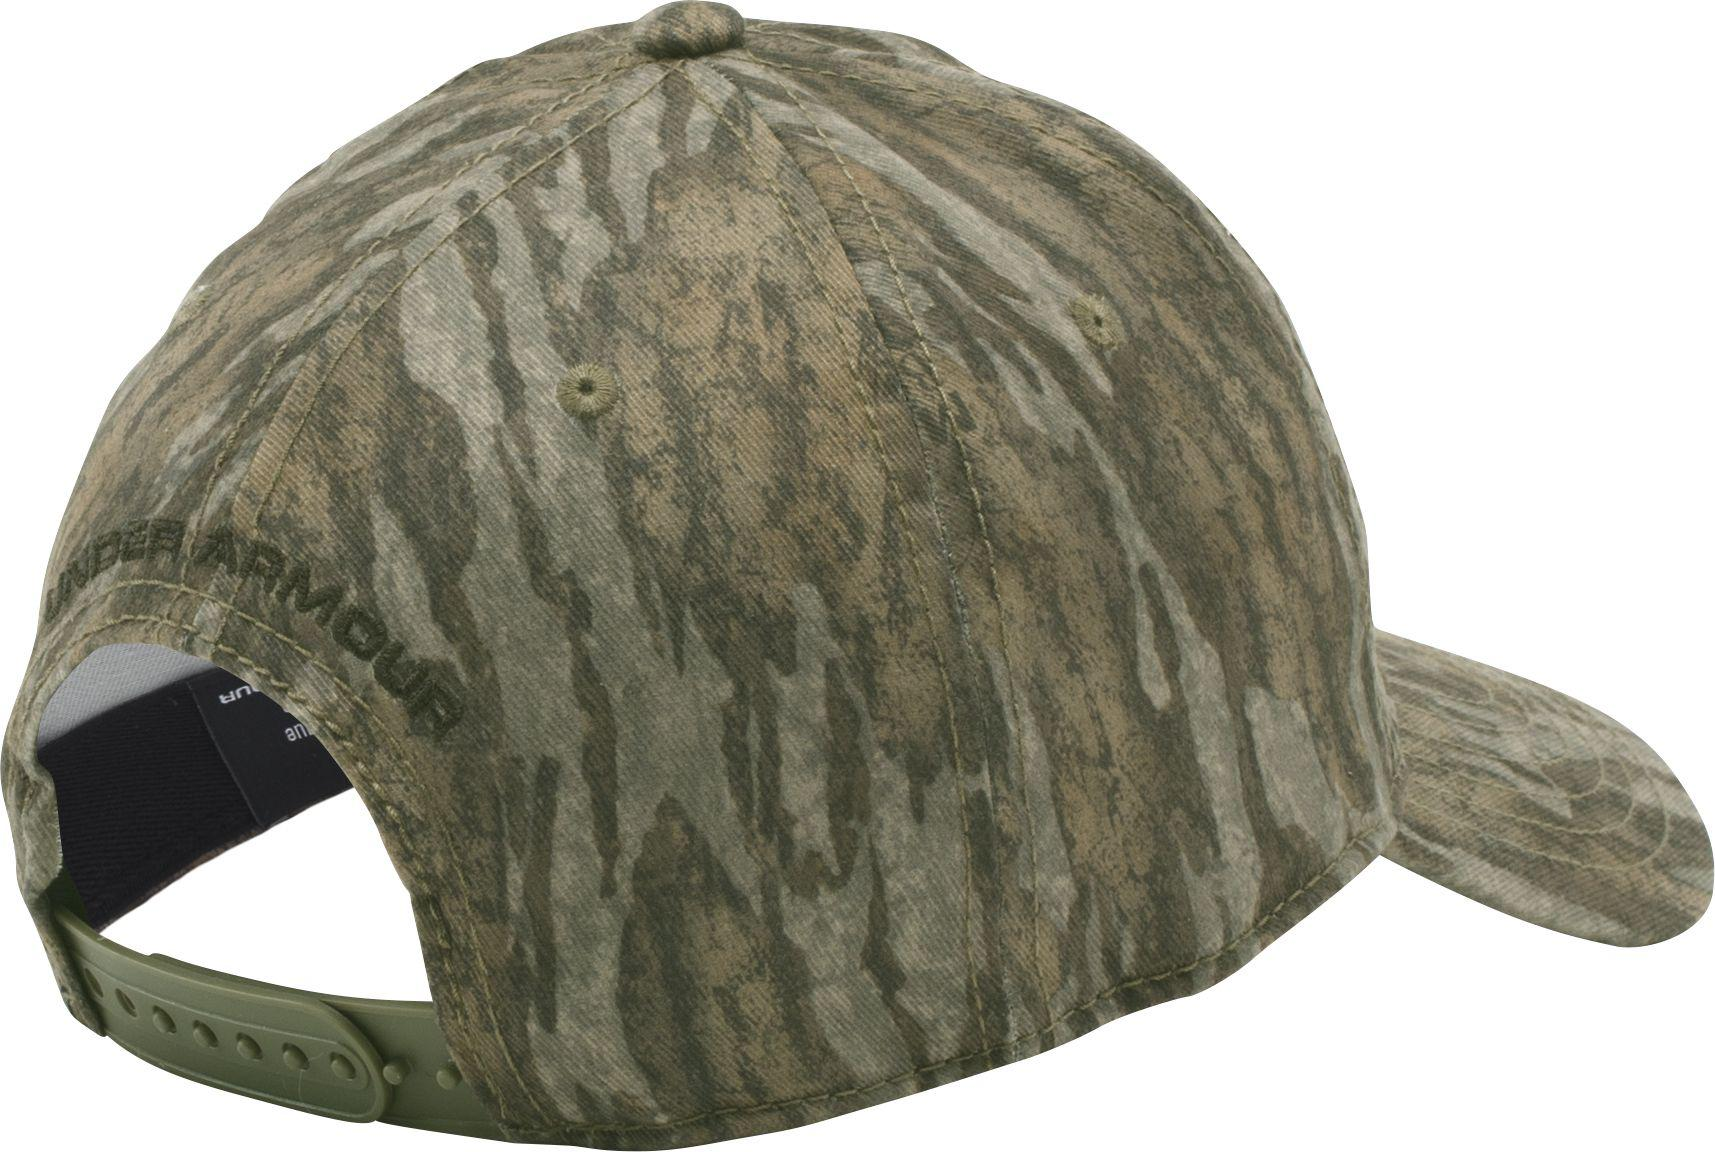 906b2dd079a7b4 ... italy lyst under armour camo hat in green for men db7c8 a920c